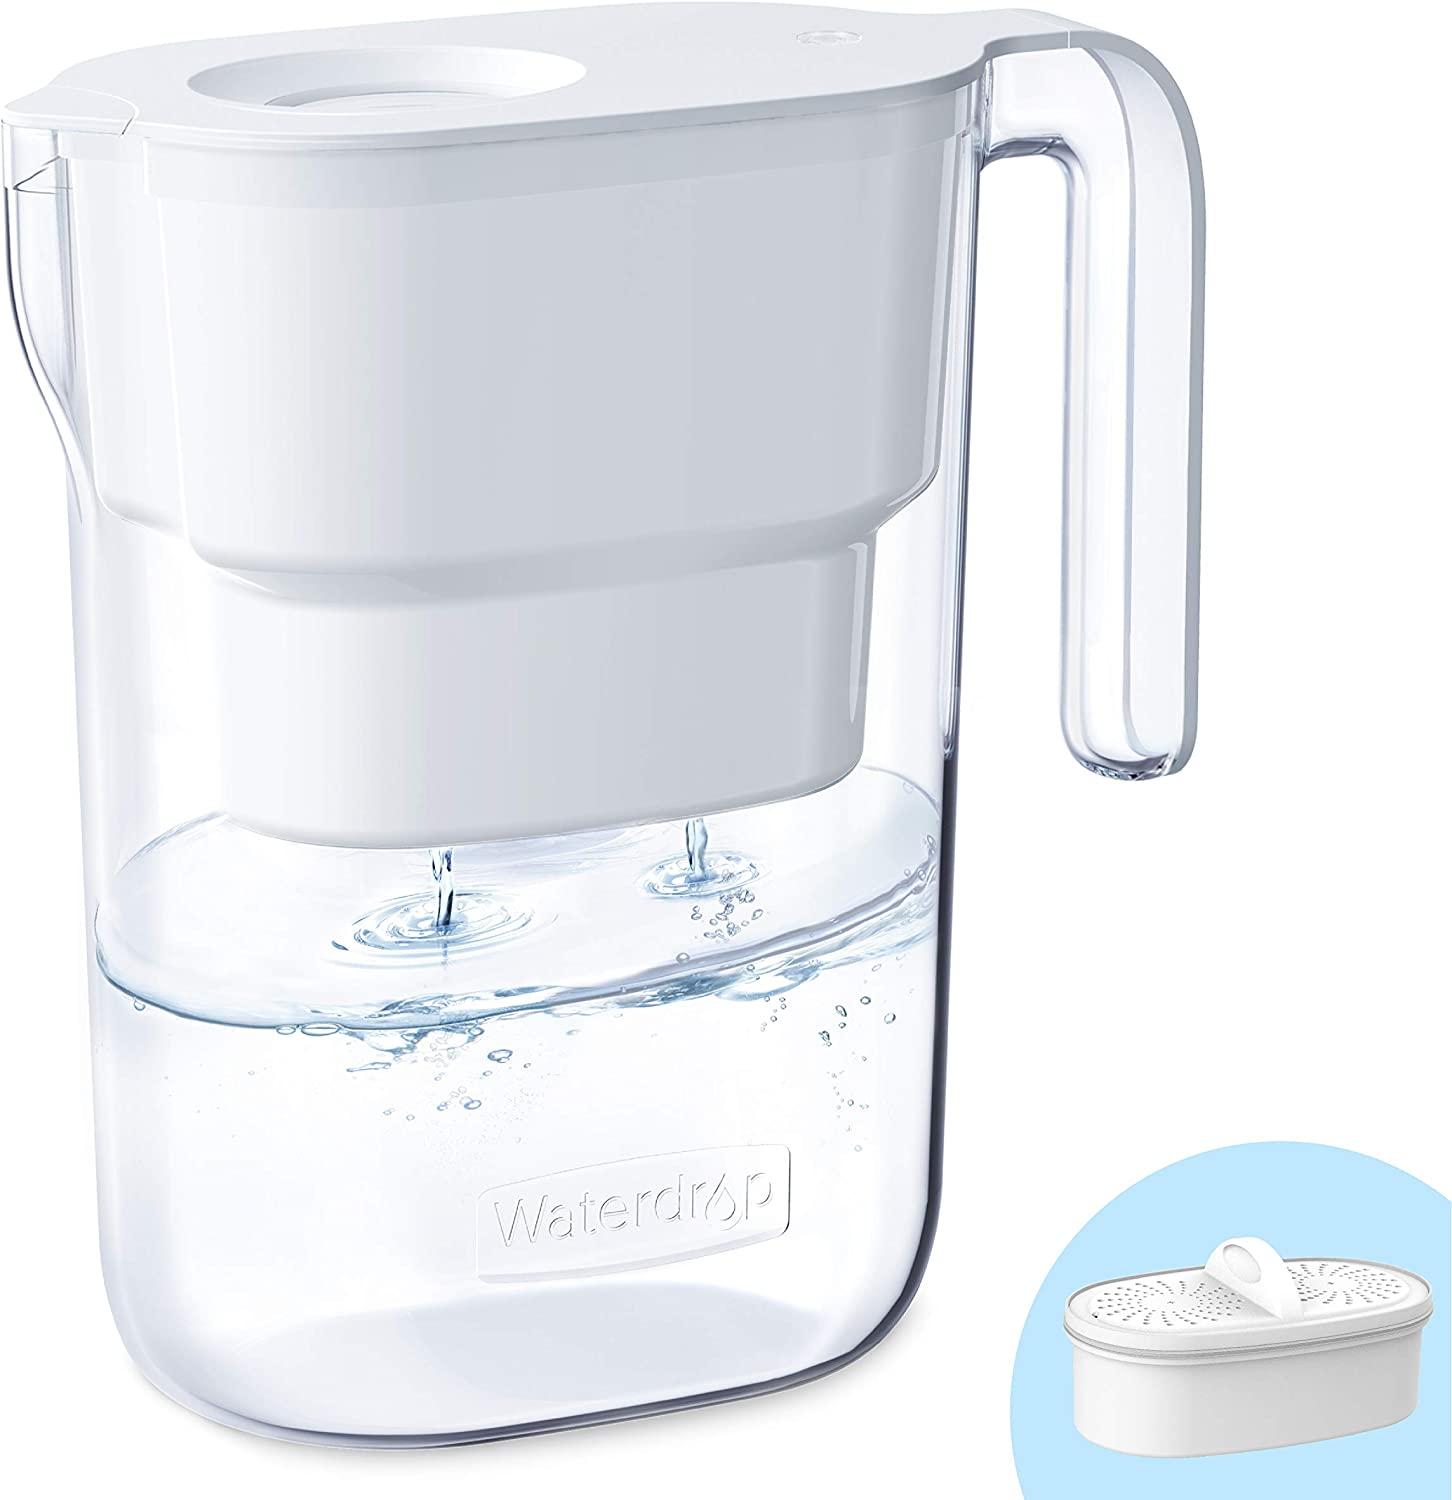 Waterdrop De-Lovely 5-Cup Water Filter Pitcher with 1 Filter, Long-Lasting (200 gallons), 5X Times Lifetime Filtration Jug, Reduces Lead, Fluoride, Chlorine and More, BPA Free, White